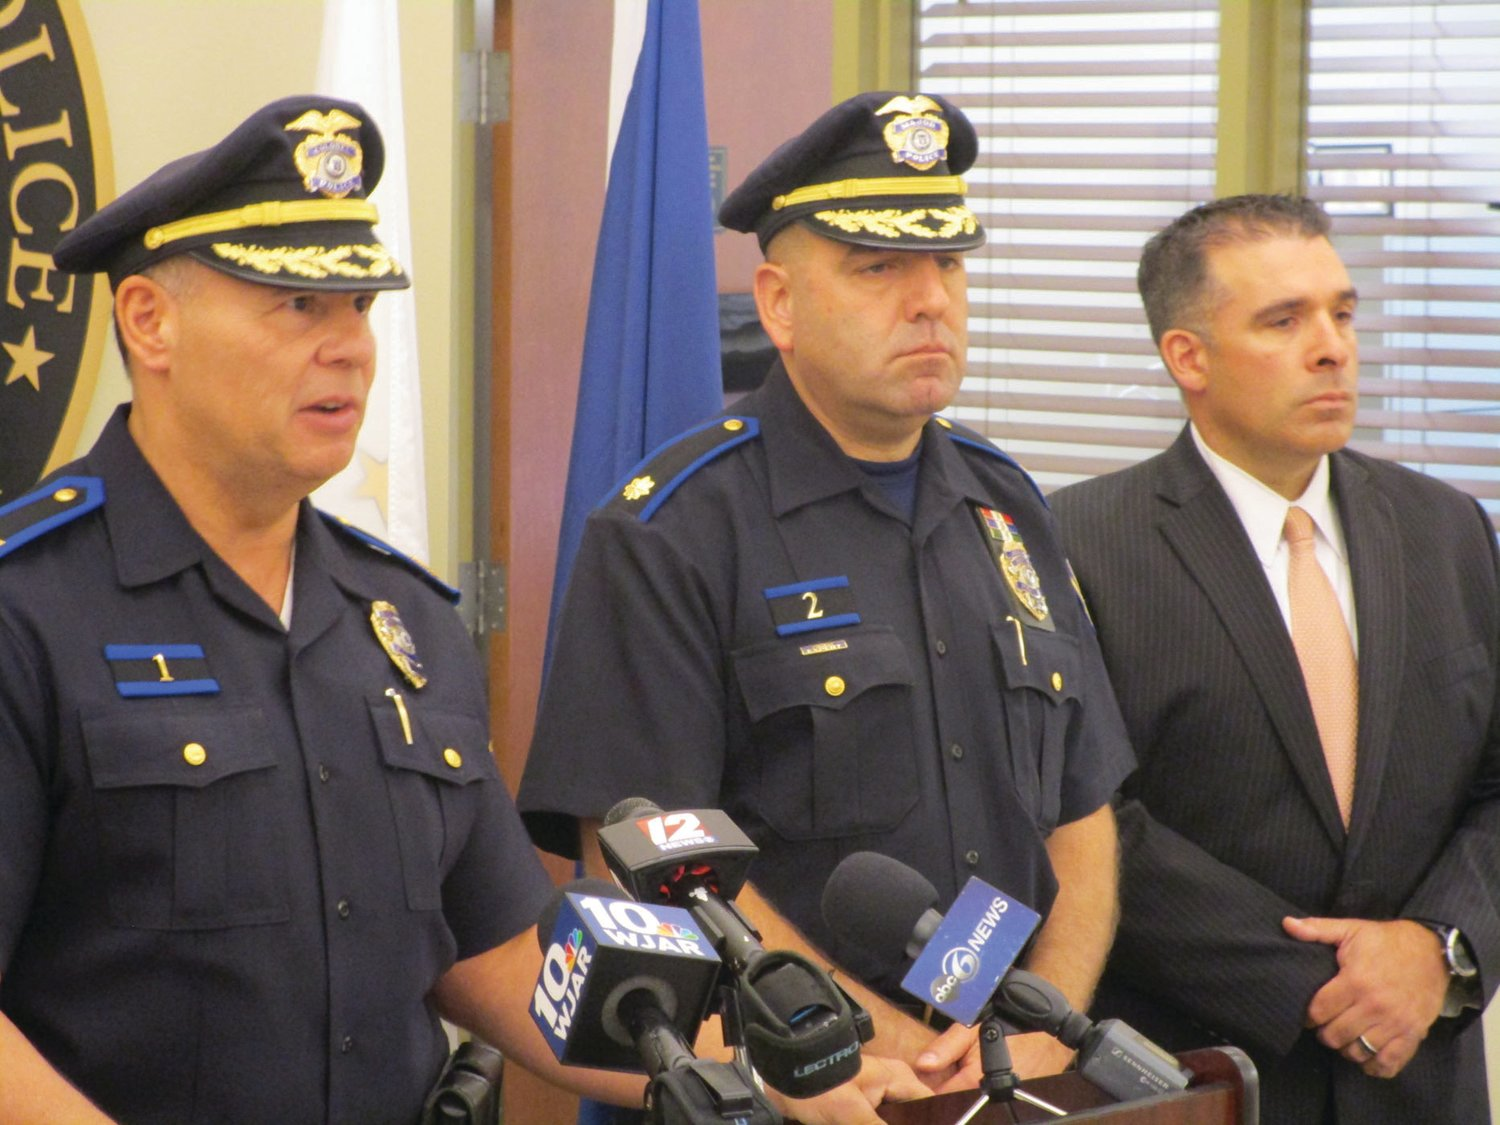 ARREST ANNOUNCED: Chief of Police Michael Winquist addresses members of the media during a press conference announcing the arrest of a murder suspect. Also pictured, from left, are Mayor Allan Fung, Maj. Todd Patalano and Capt. Vincent McAteer.